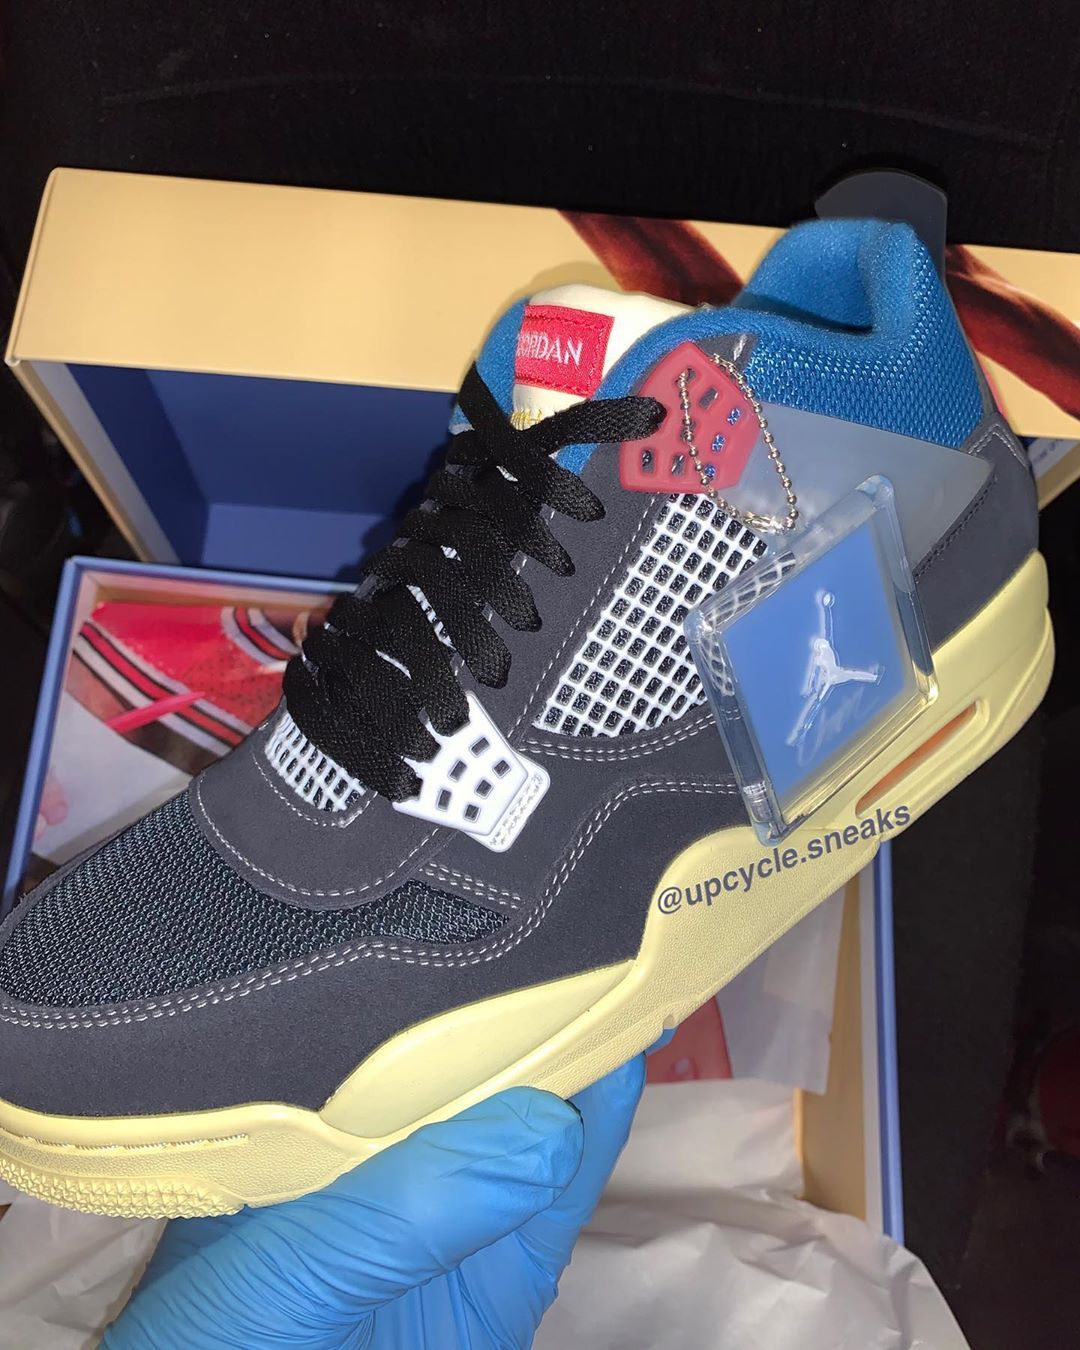 Union x Air Jordan 4 Leak